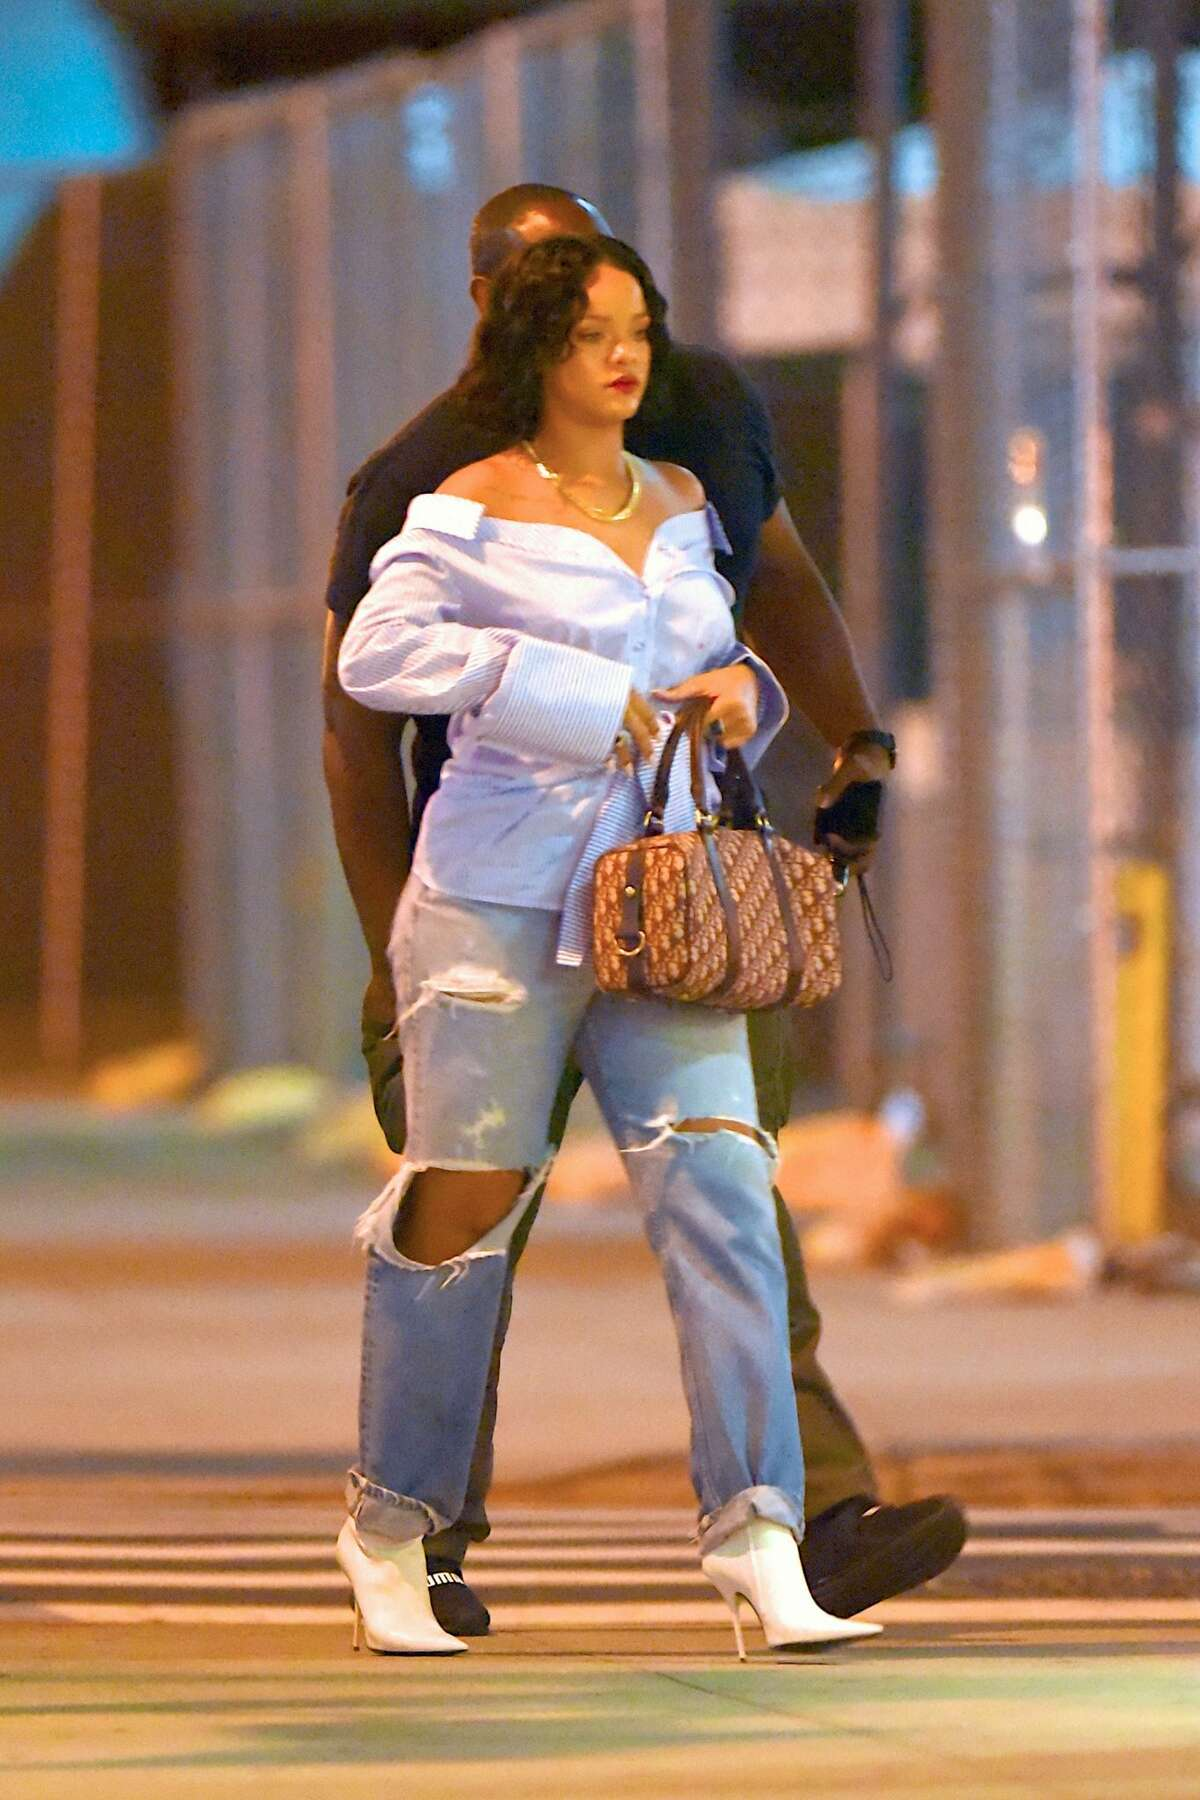 Rihanna has been in headlines because some photos emerged of her looking a little curvier than usual. >>KEEP CLICKING TO SEE THE MANY FACES OF RIHANNA